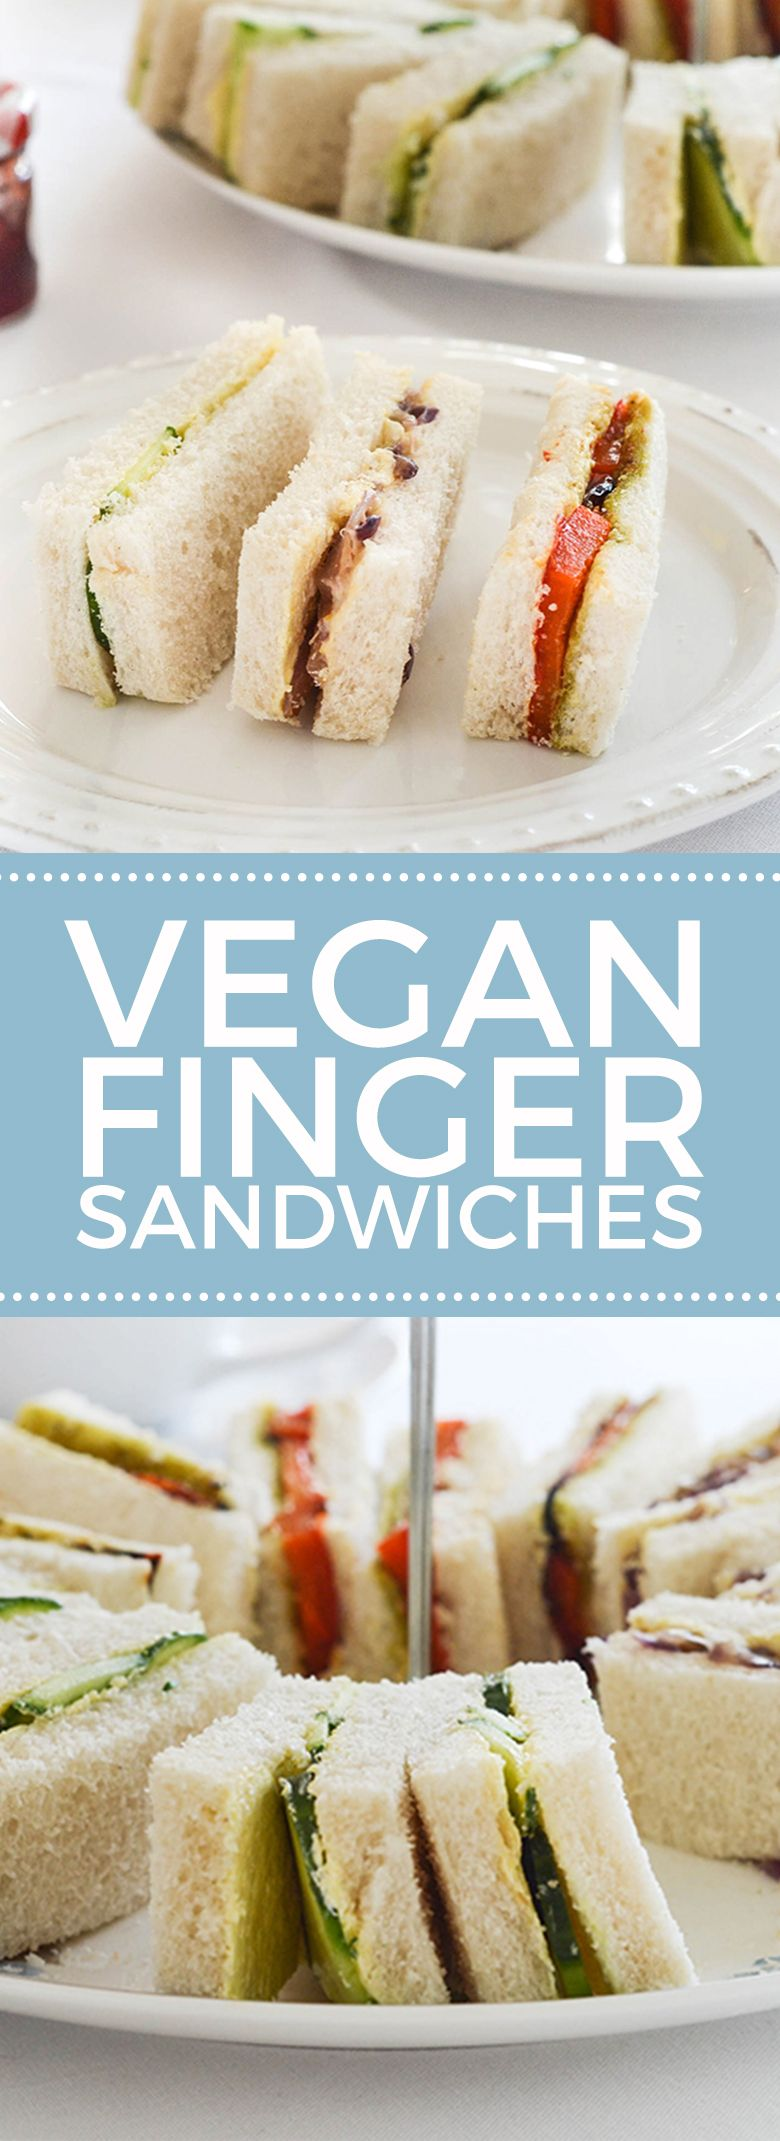 Vegan Tea Sandwiches | Vegan teas, Finger sandwiches and Finger